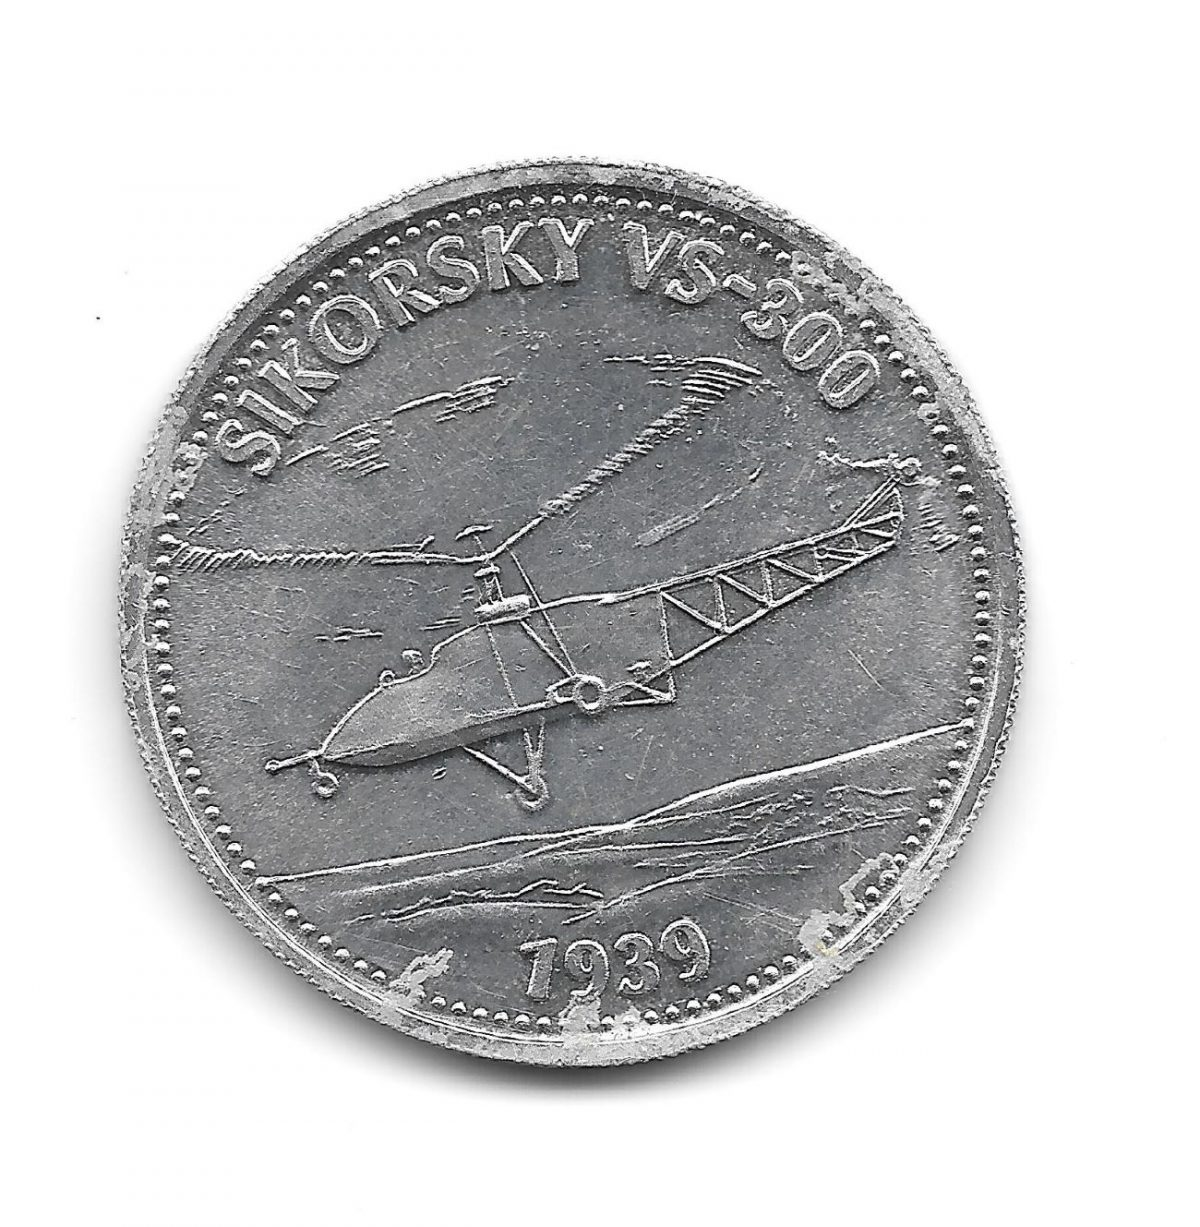 Shell, coins, Man in Flight, 1970s, Sikorsky